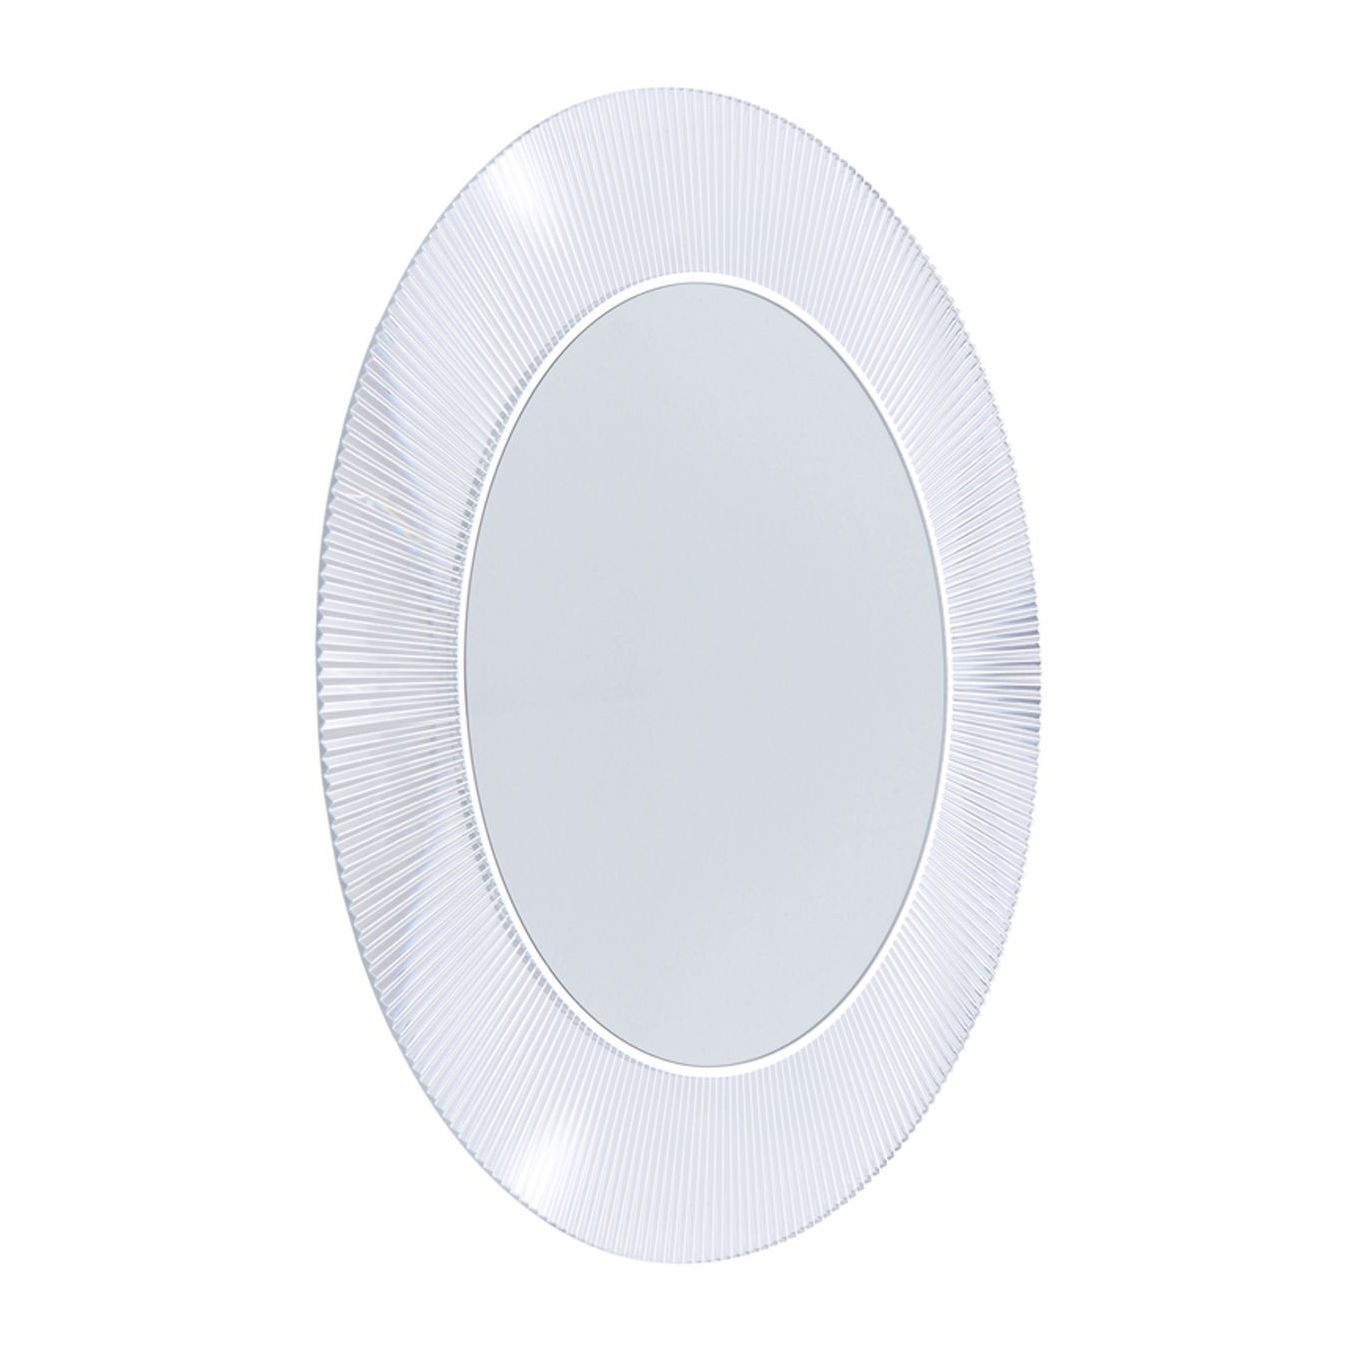 Miroir lumineux all saints led 78 cm cristal kartell for Miroir kartell